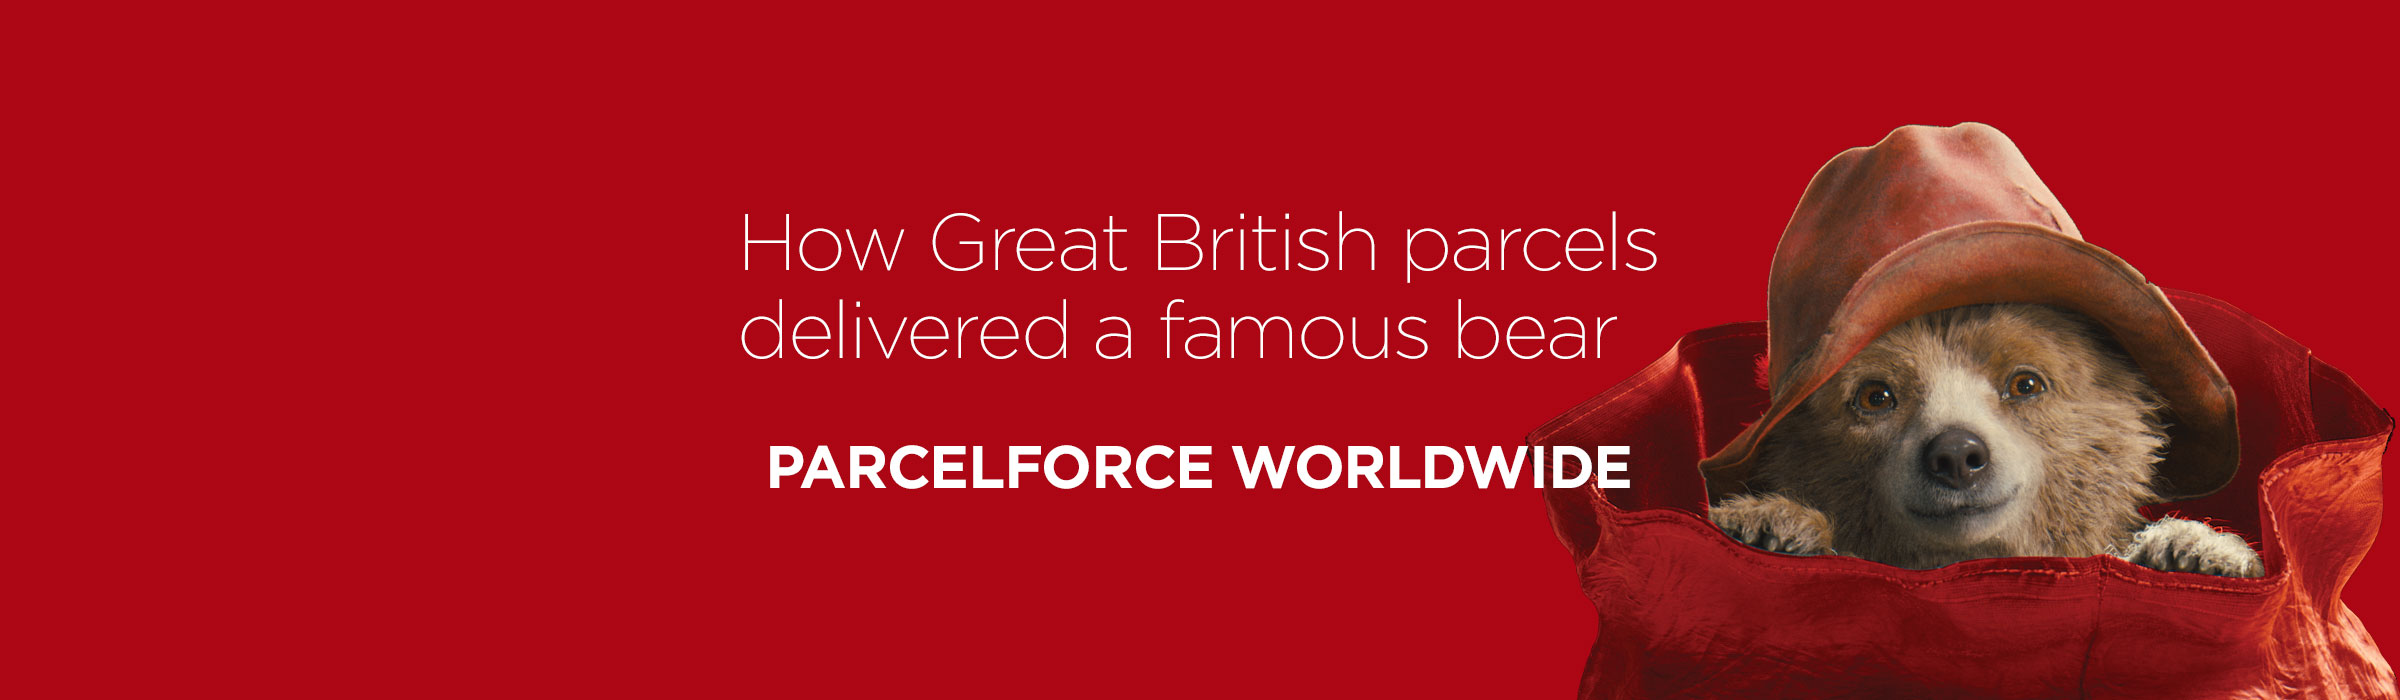 Parcelforce Worldwide – How Great British parcels delivered a famous bear